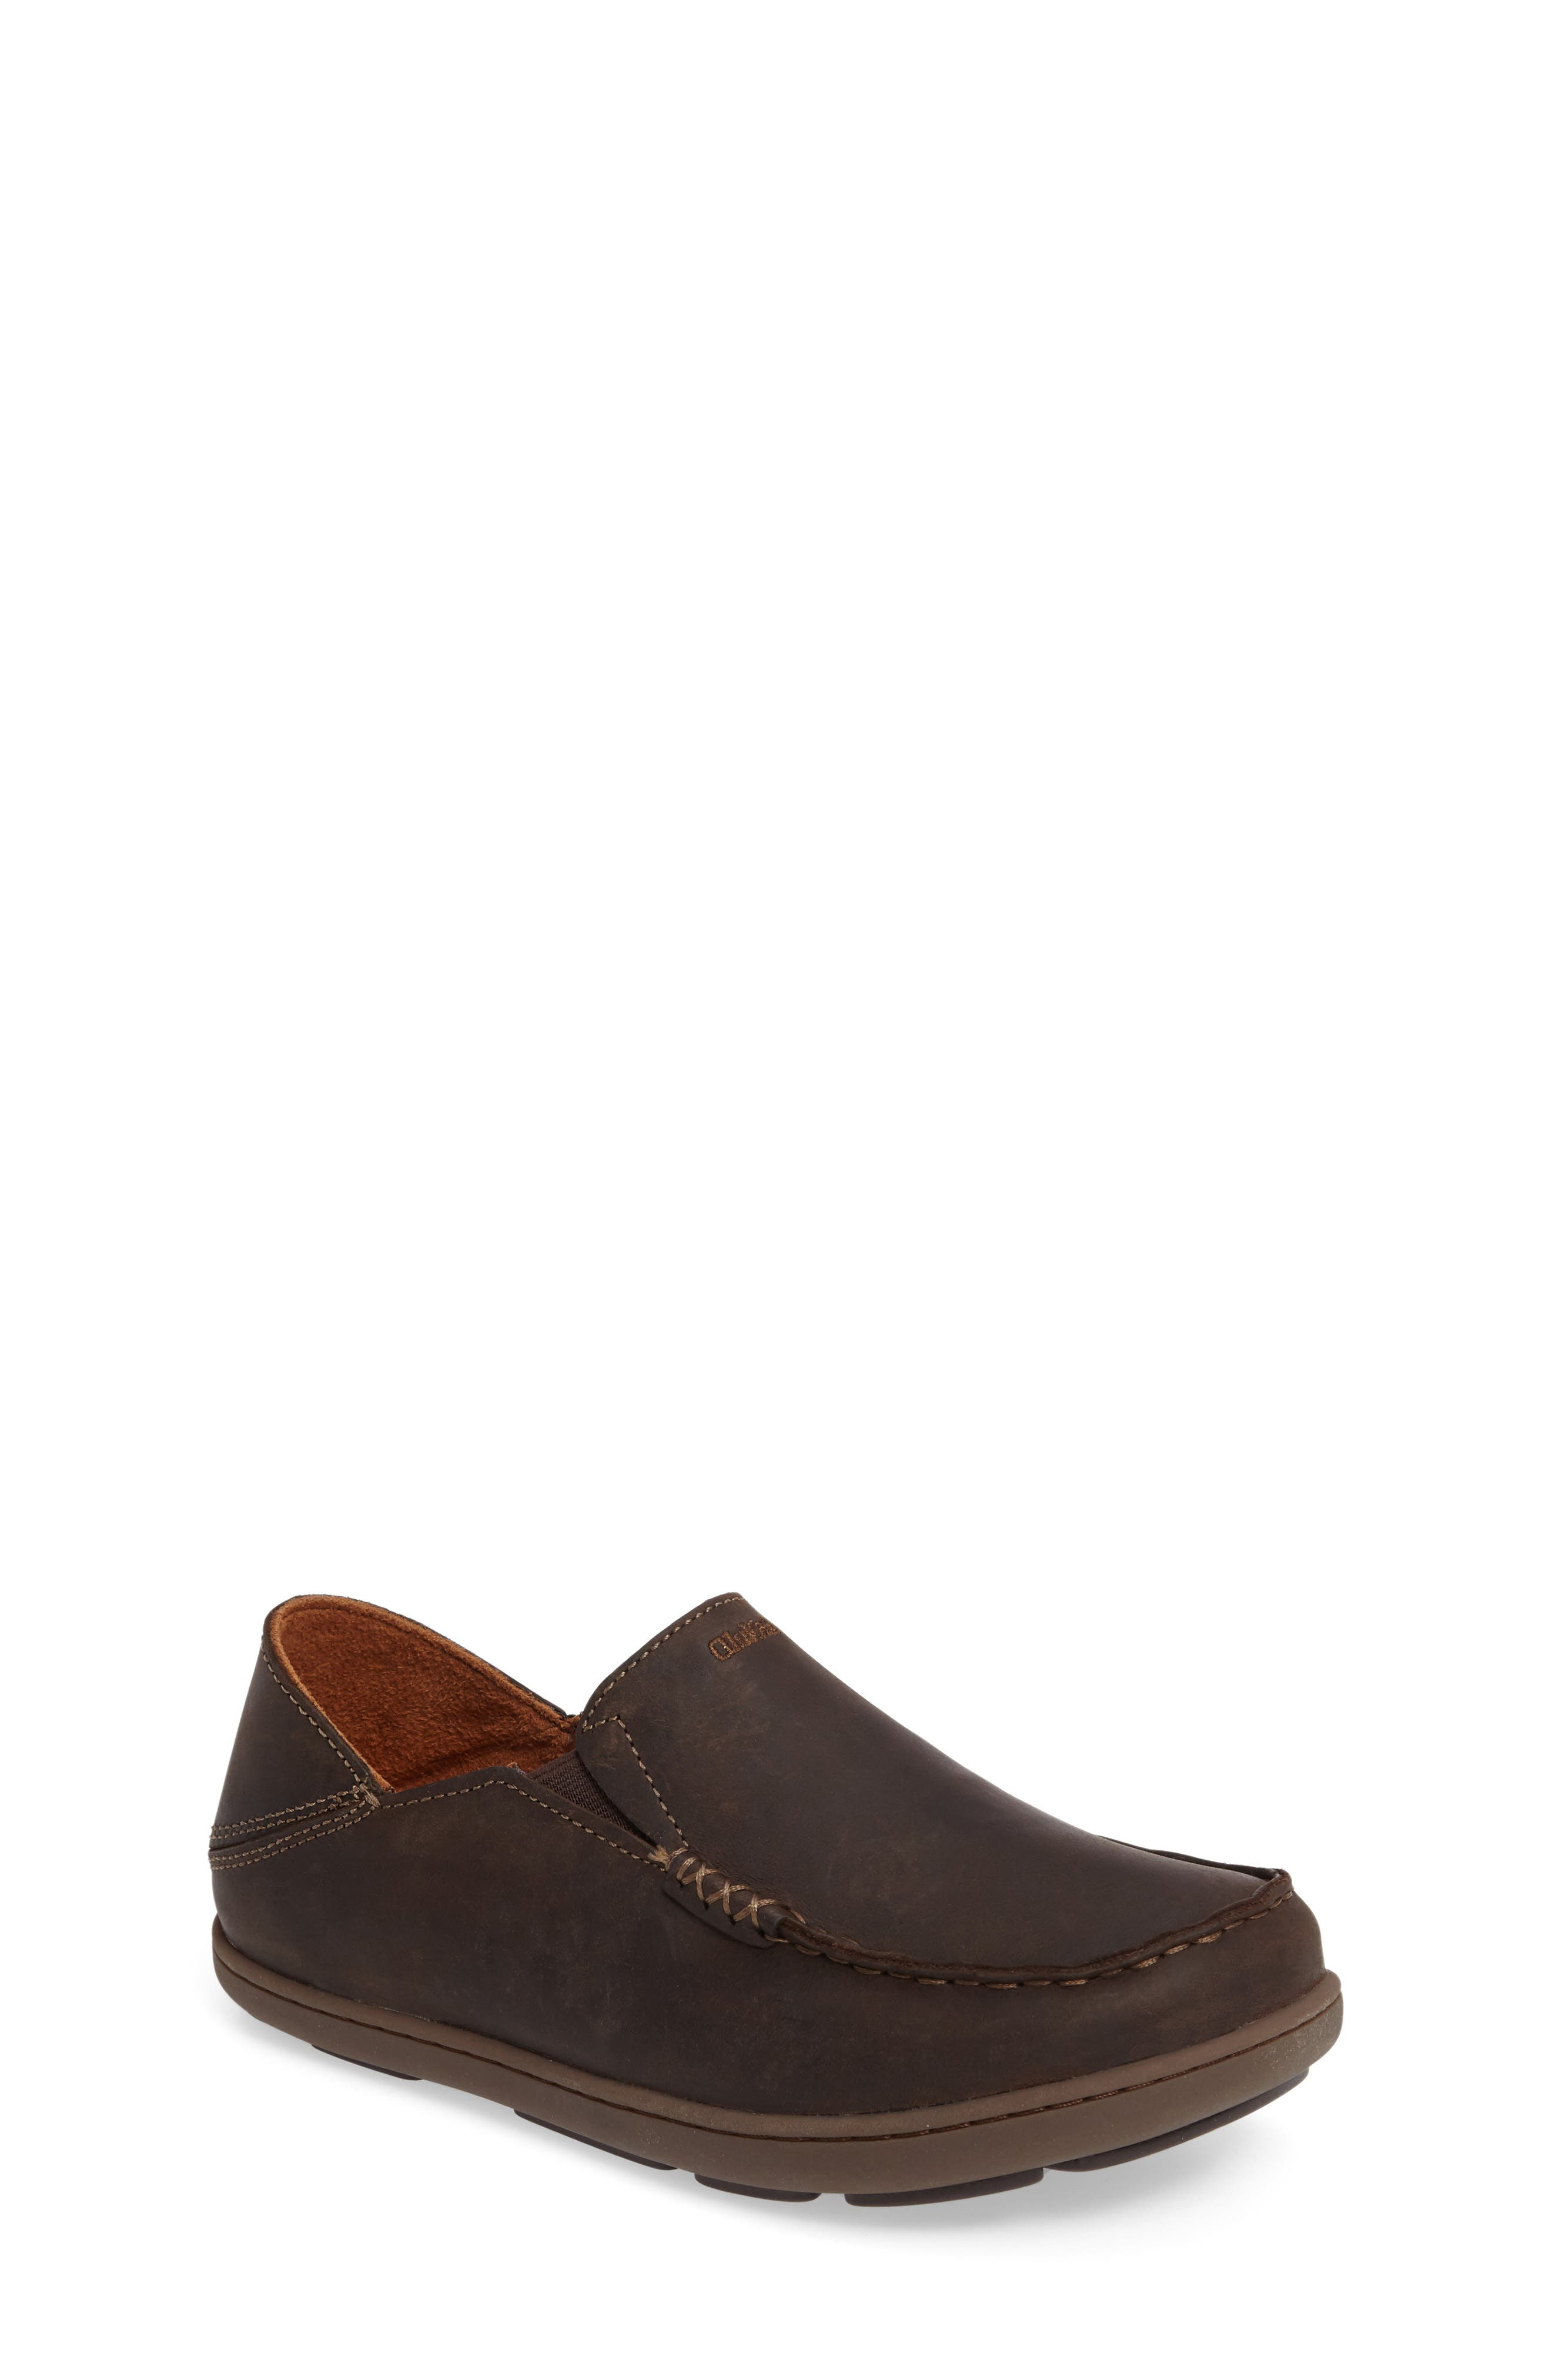 'Moloa' Water Resistant Slip-On,                             Main thumbnail 1, color,                             DARK WOOD/ MUSTANG